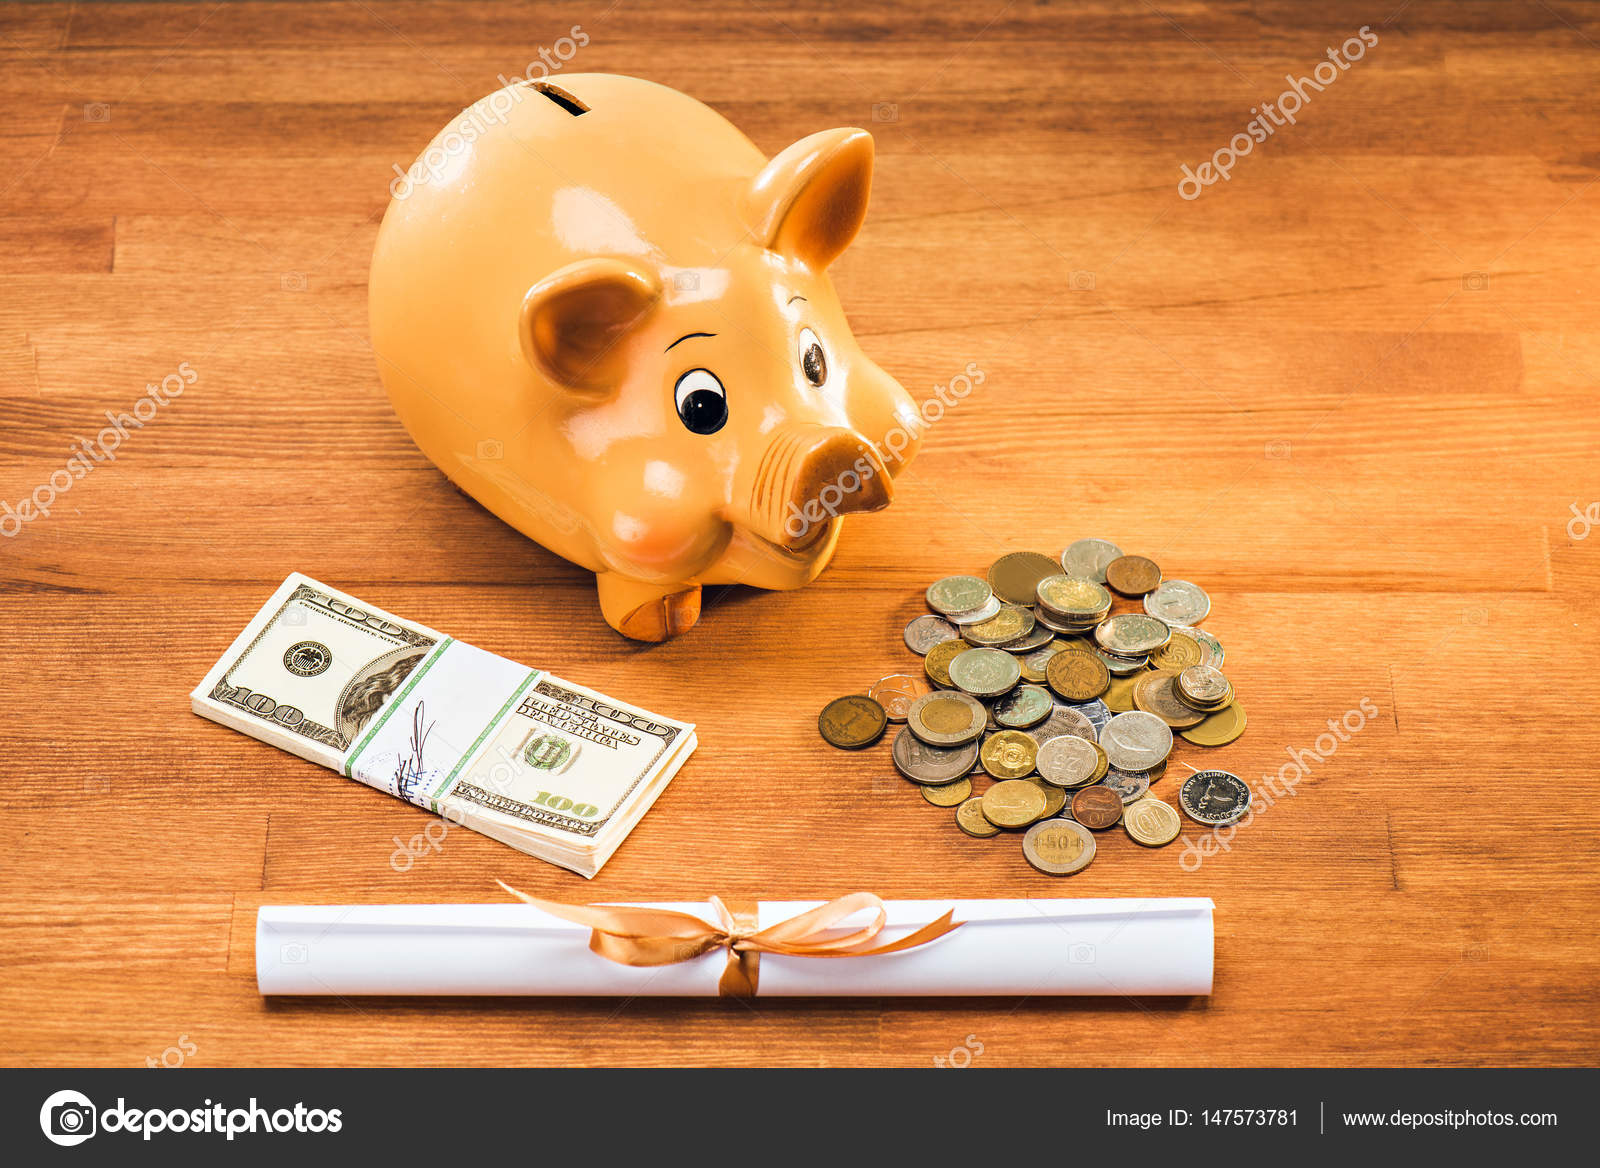 diploma and piggy bank stock photo © sergpoznanskiy  diploma and piggy bank coins and dollars on wooden tabletop education concept photo by sergpoznanskiy